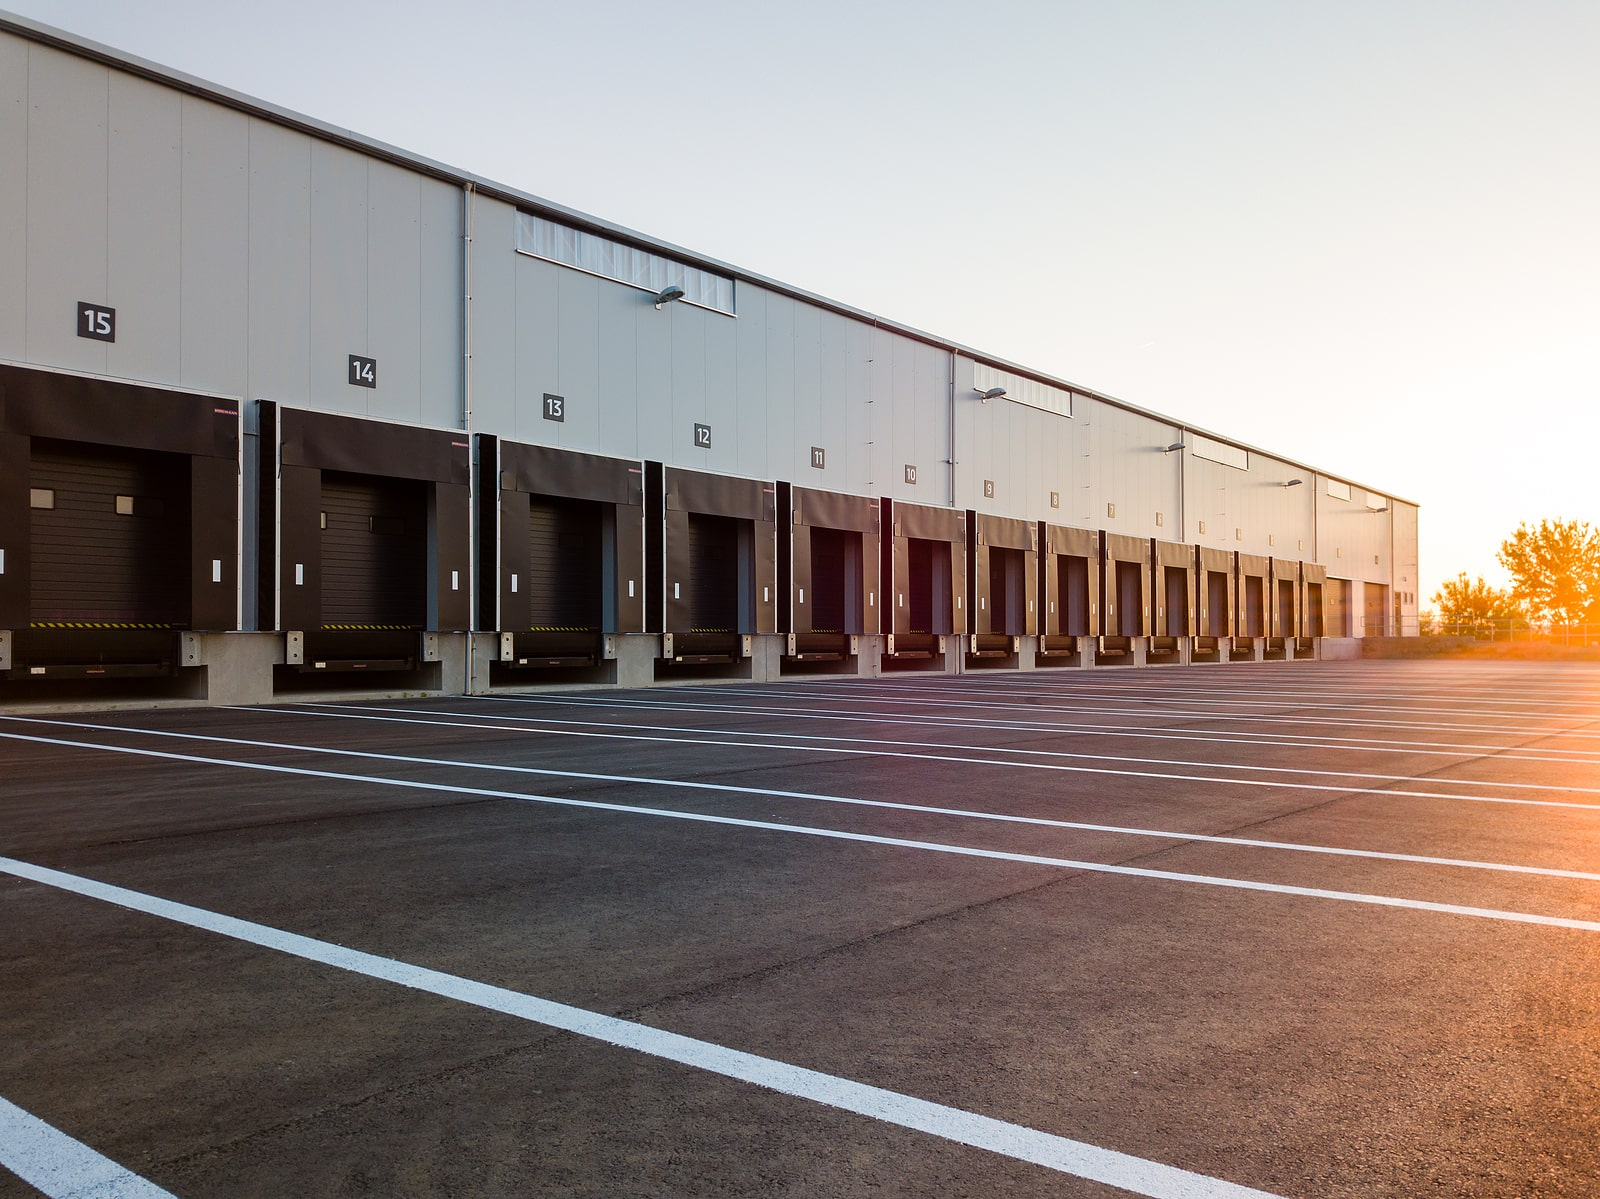 Outside of a warehouse with loading docks for storage trailers